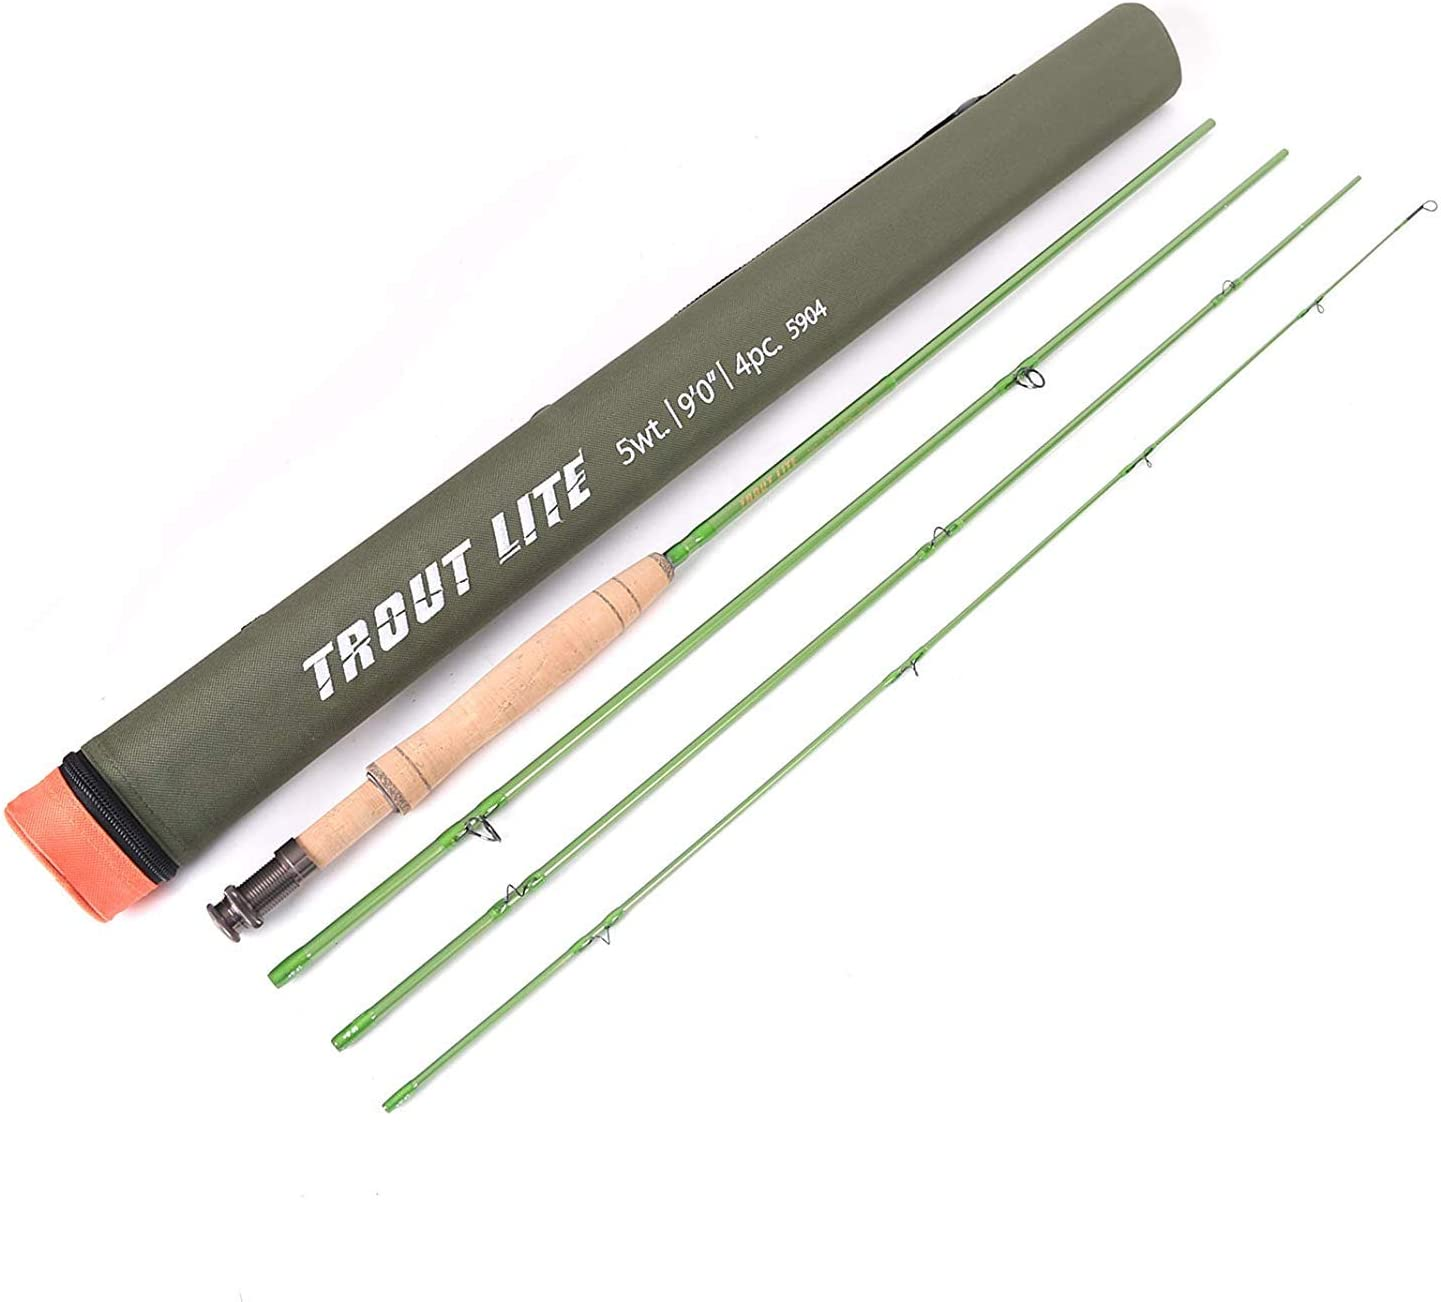 M MAXIMUMCATCH Maxcatch Trout Lite Fishing Rod IM12 Graphite 4-Piece-Designed for The Trout Angler-Moderate Action,Light Presentation with Cordura Tube(Size: 3/4/5wt) (7'6'' 3wt-4pcs)